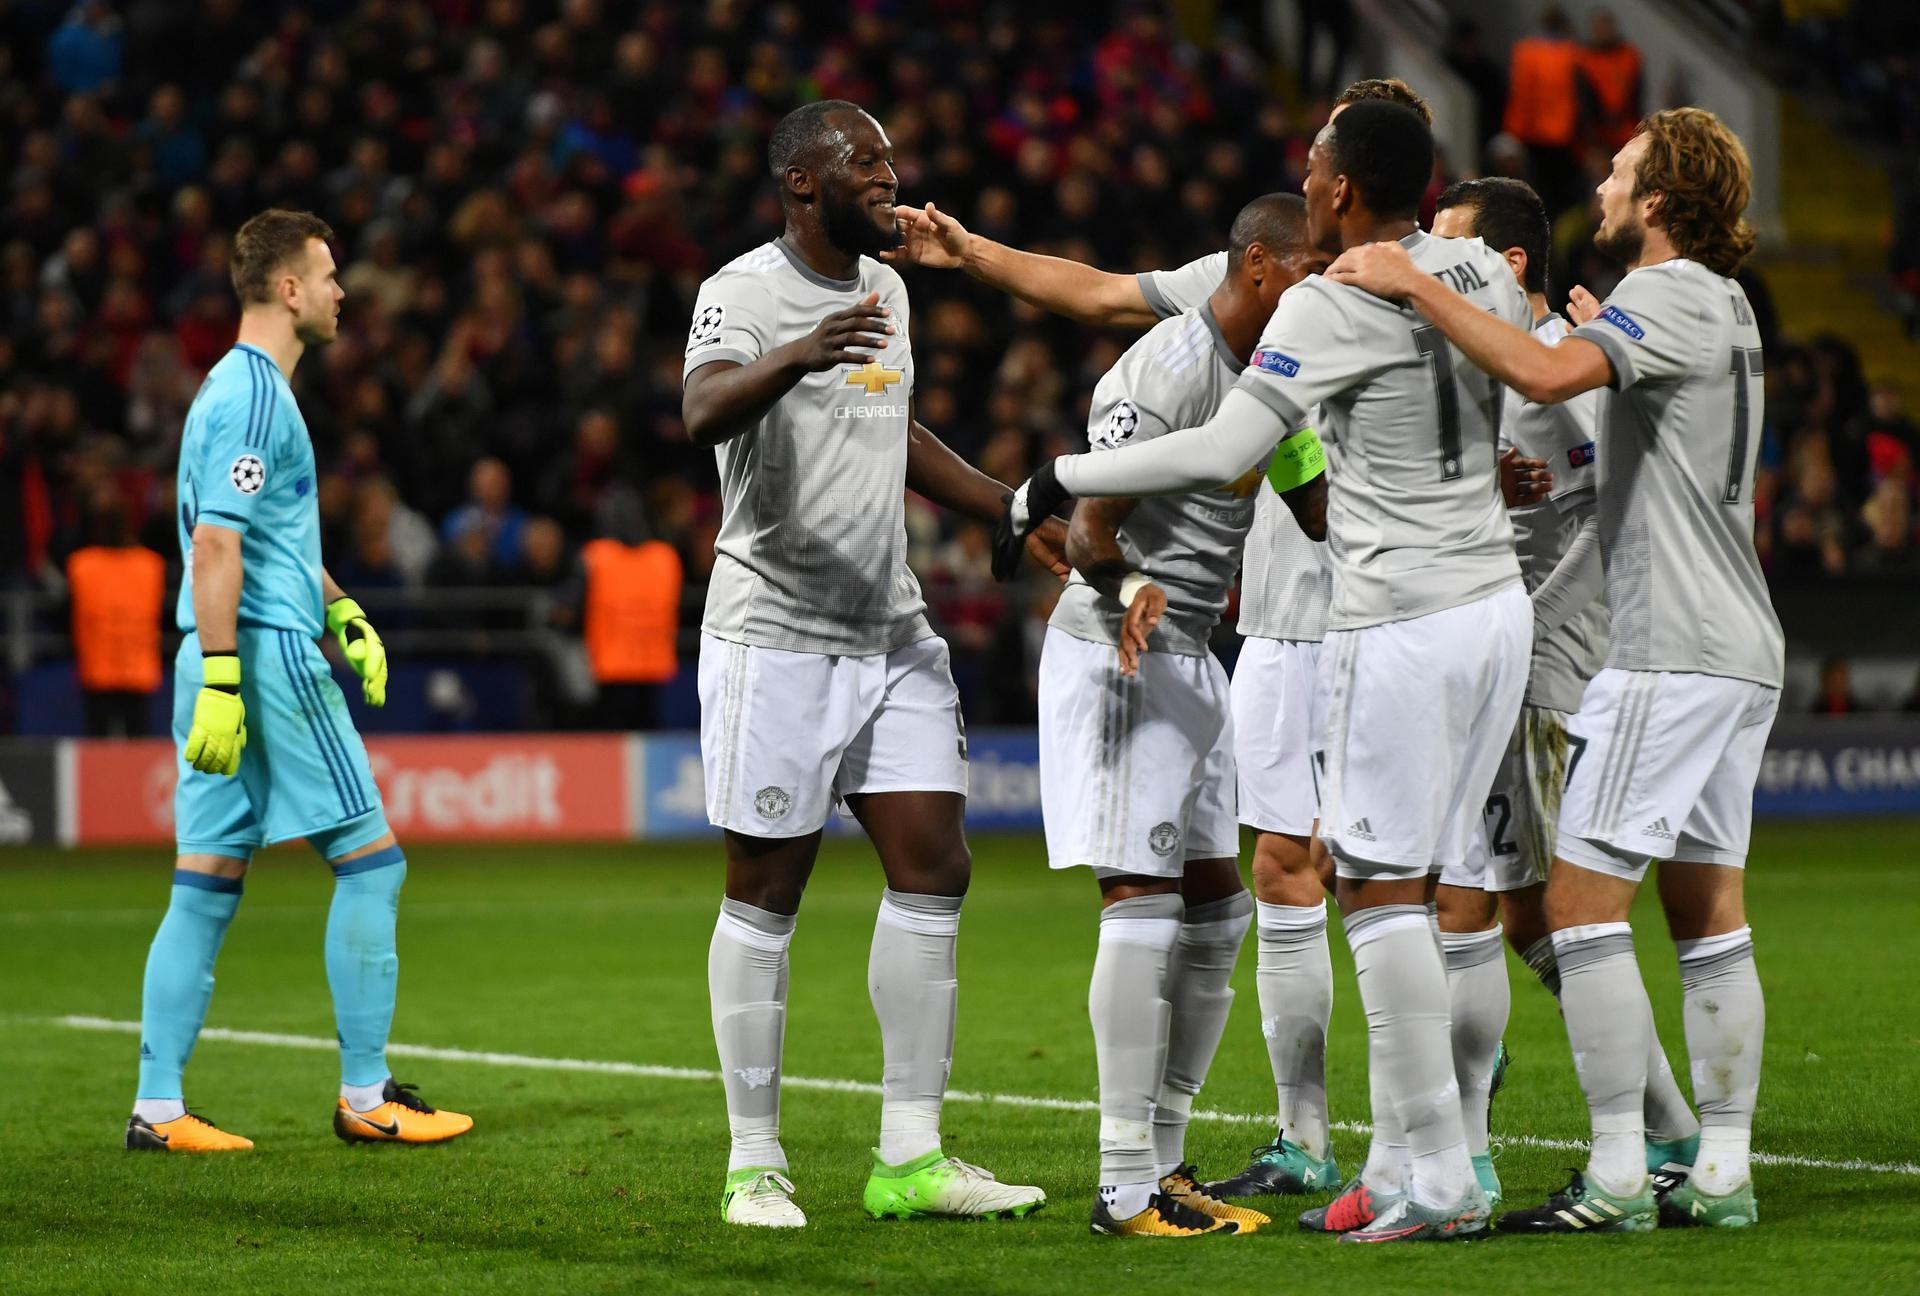 Romelu Lukaku is congratulated after scoring against CSKA Moscow